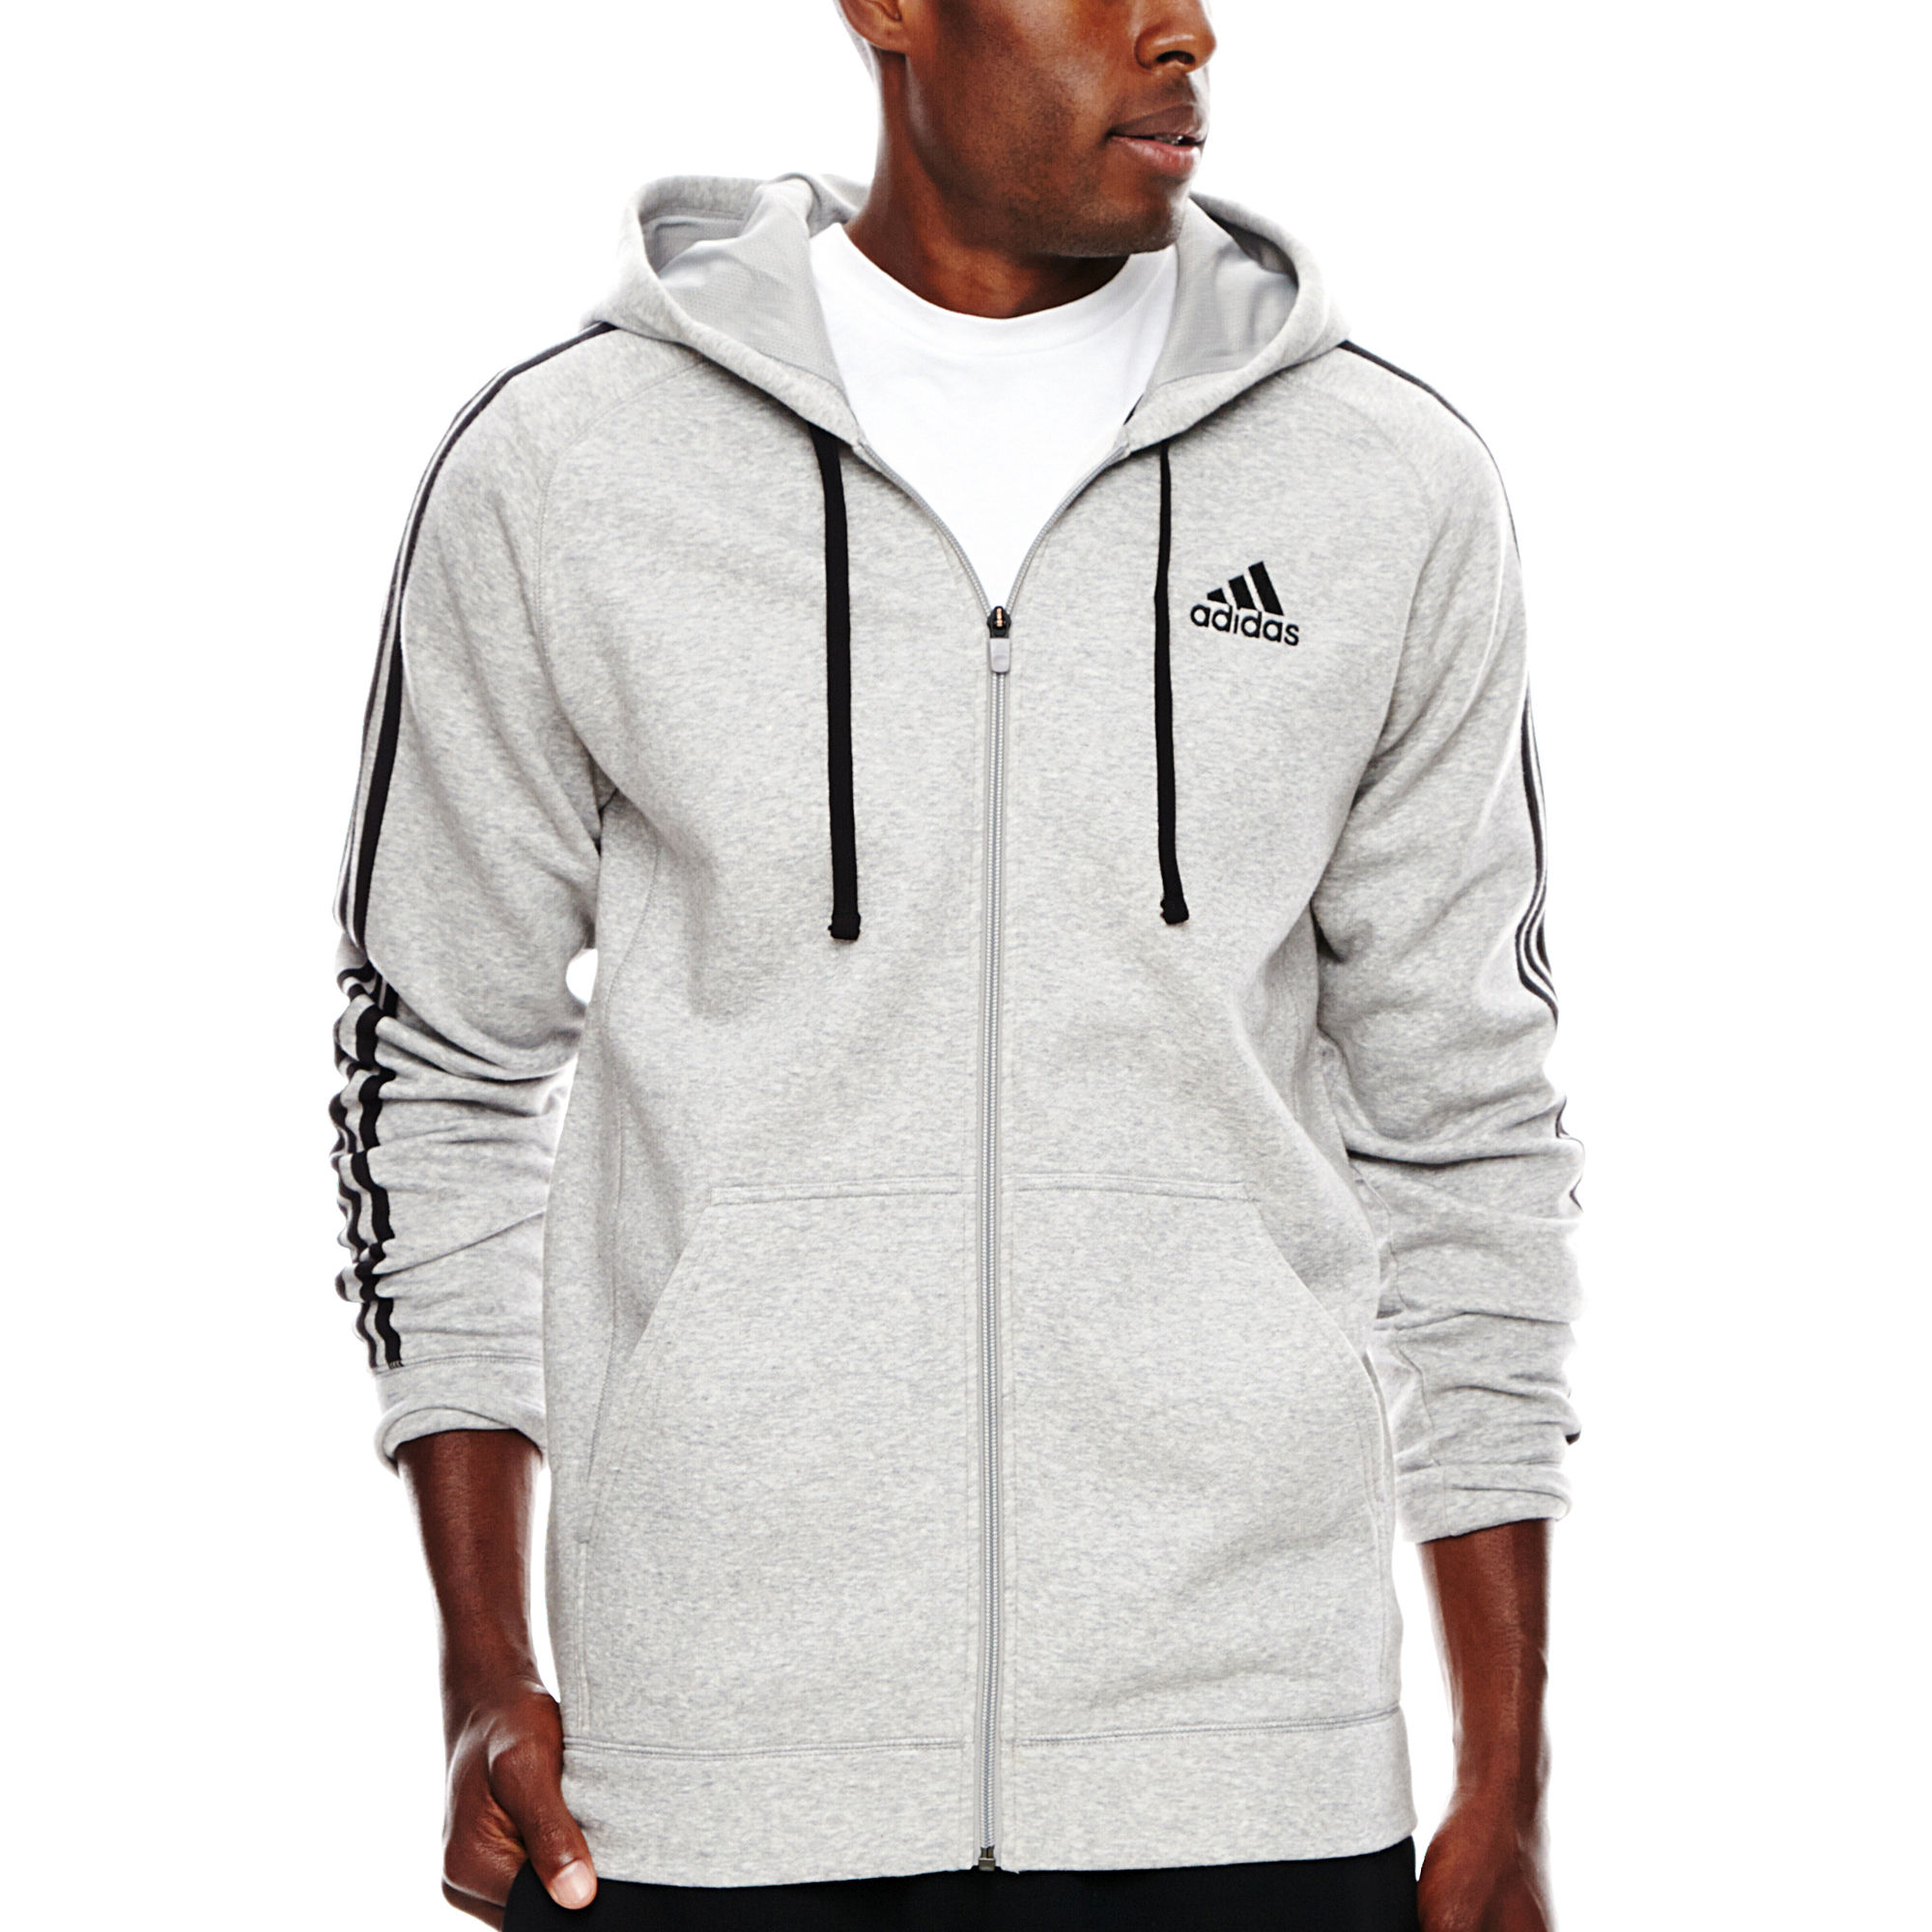 UPC 888590799425 - adidas Essential Cotton Full-Zip Fleece Hoodie ...